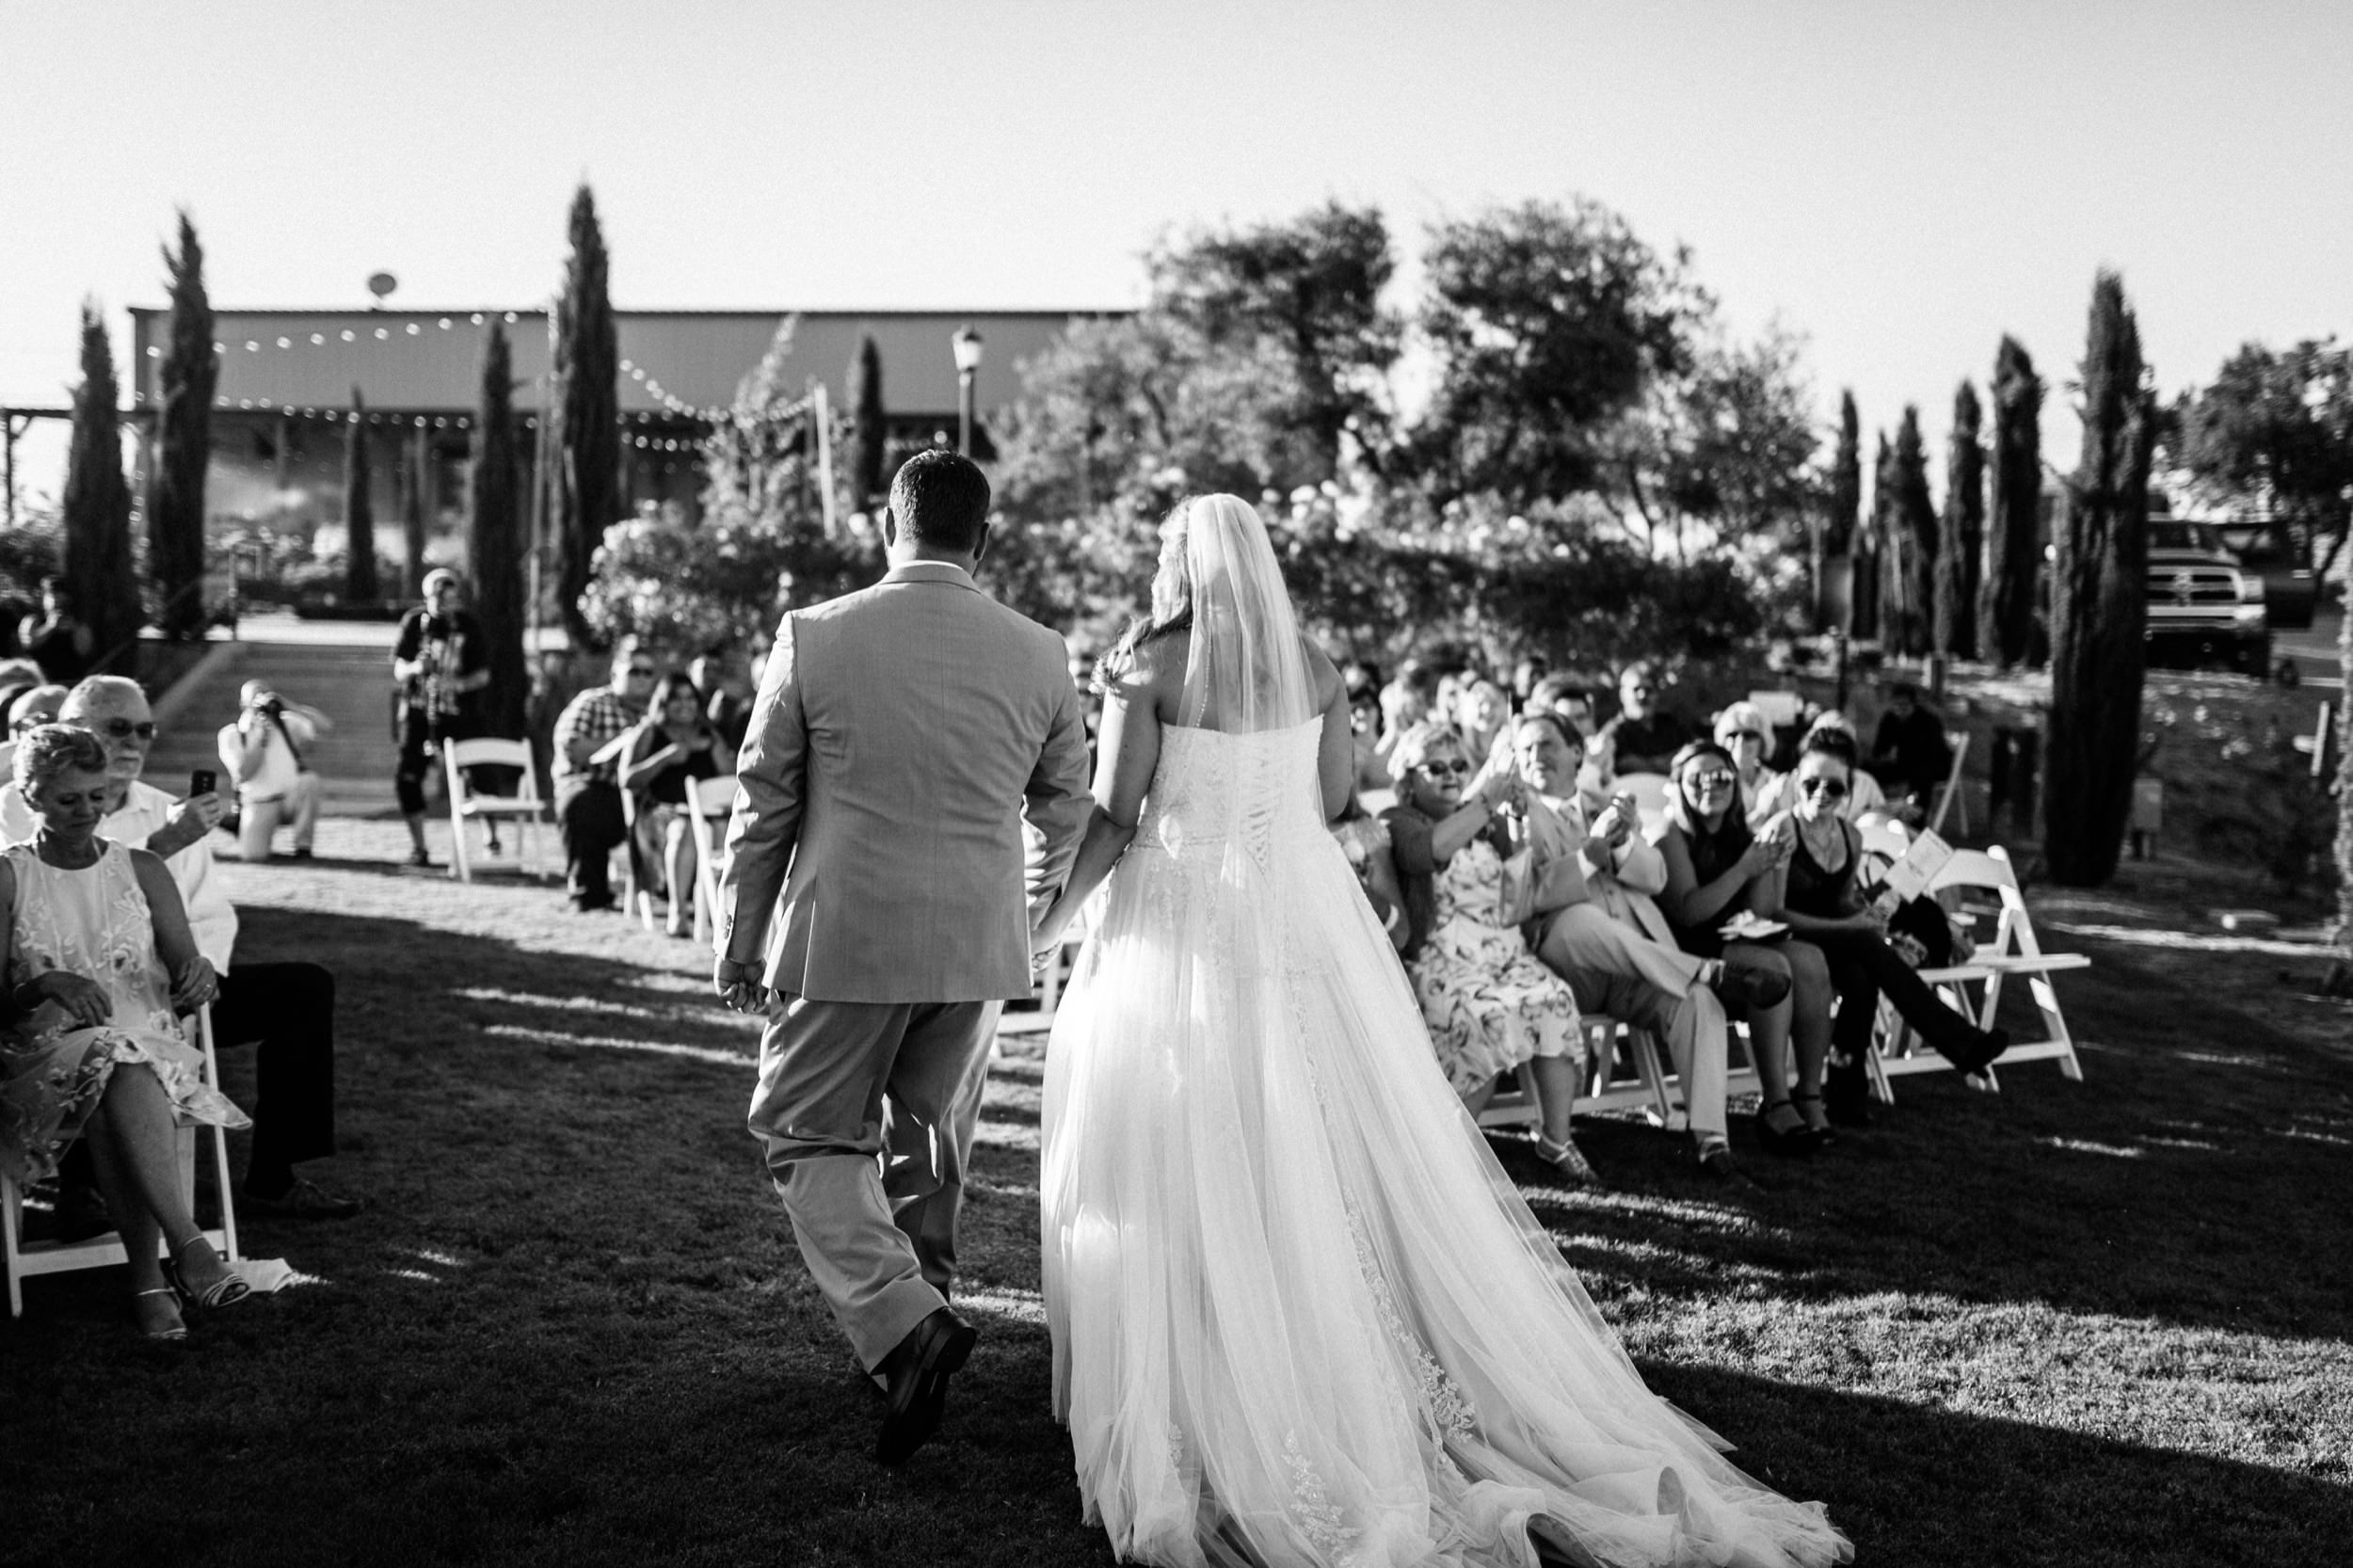 Toca Madera Winery Wedding Photography 106.jpg